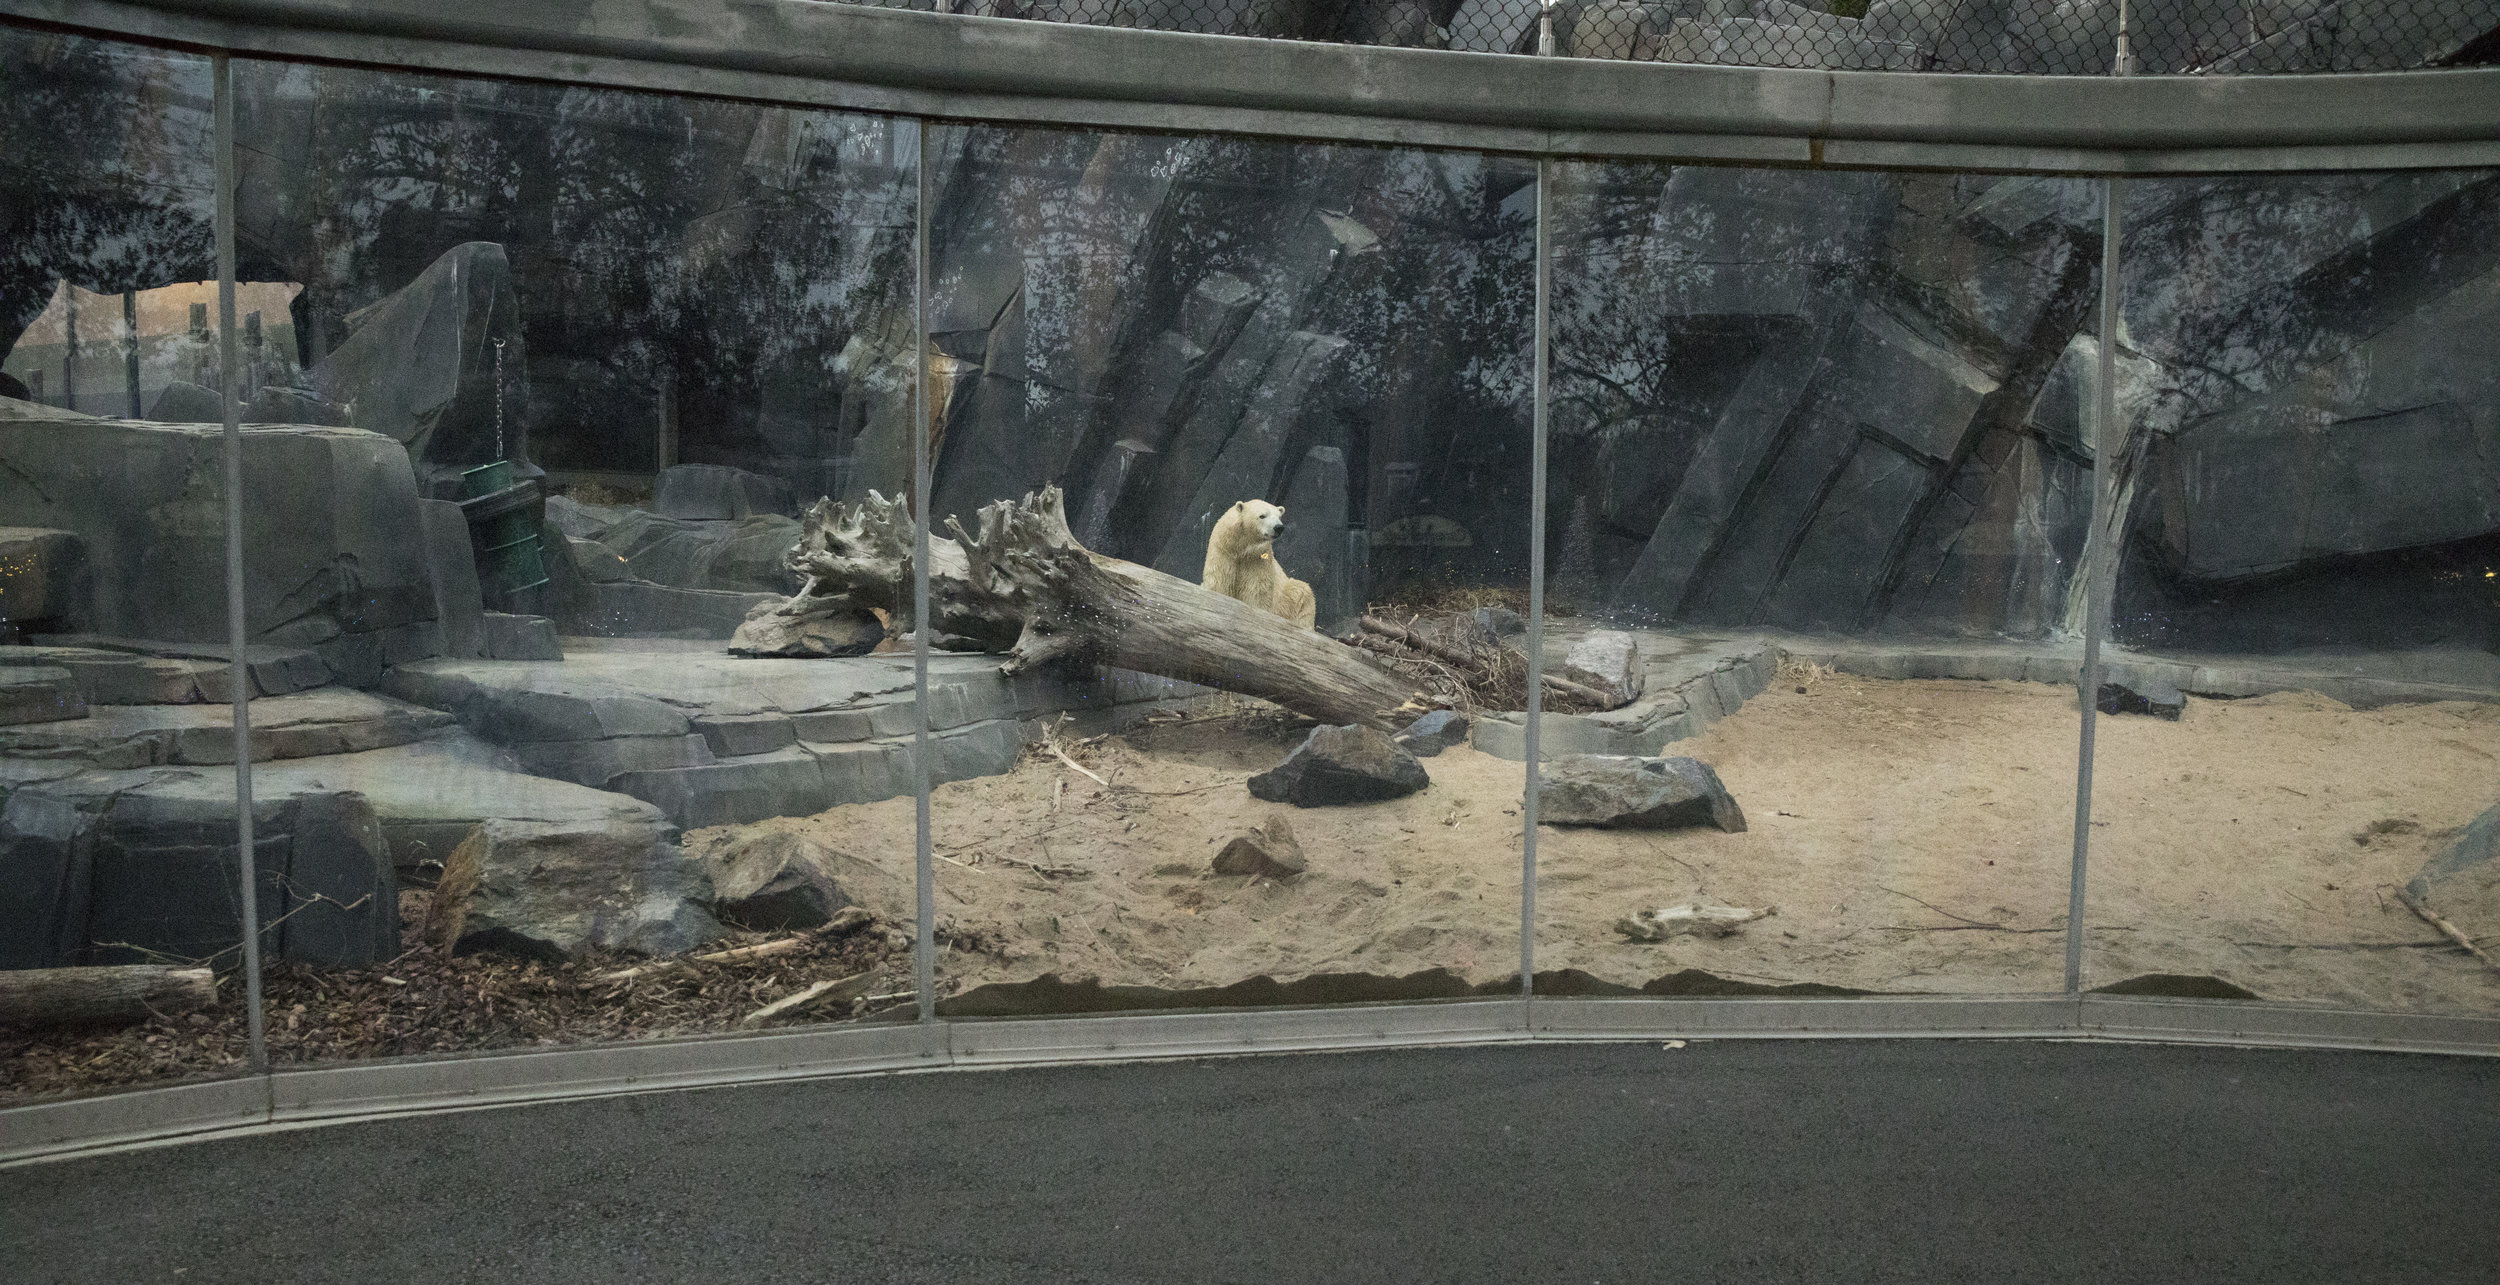 Saint_Louis_Zoo_Photographer_Polar_Bear_Exhibit.jpg